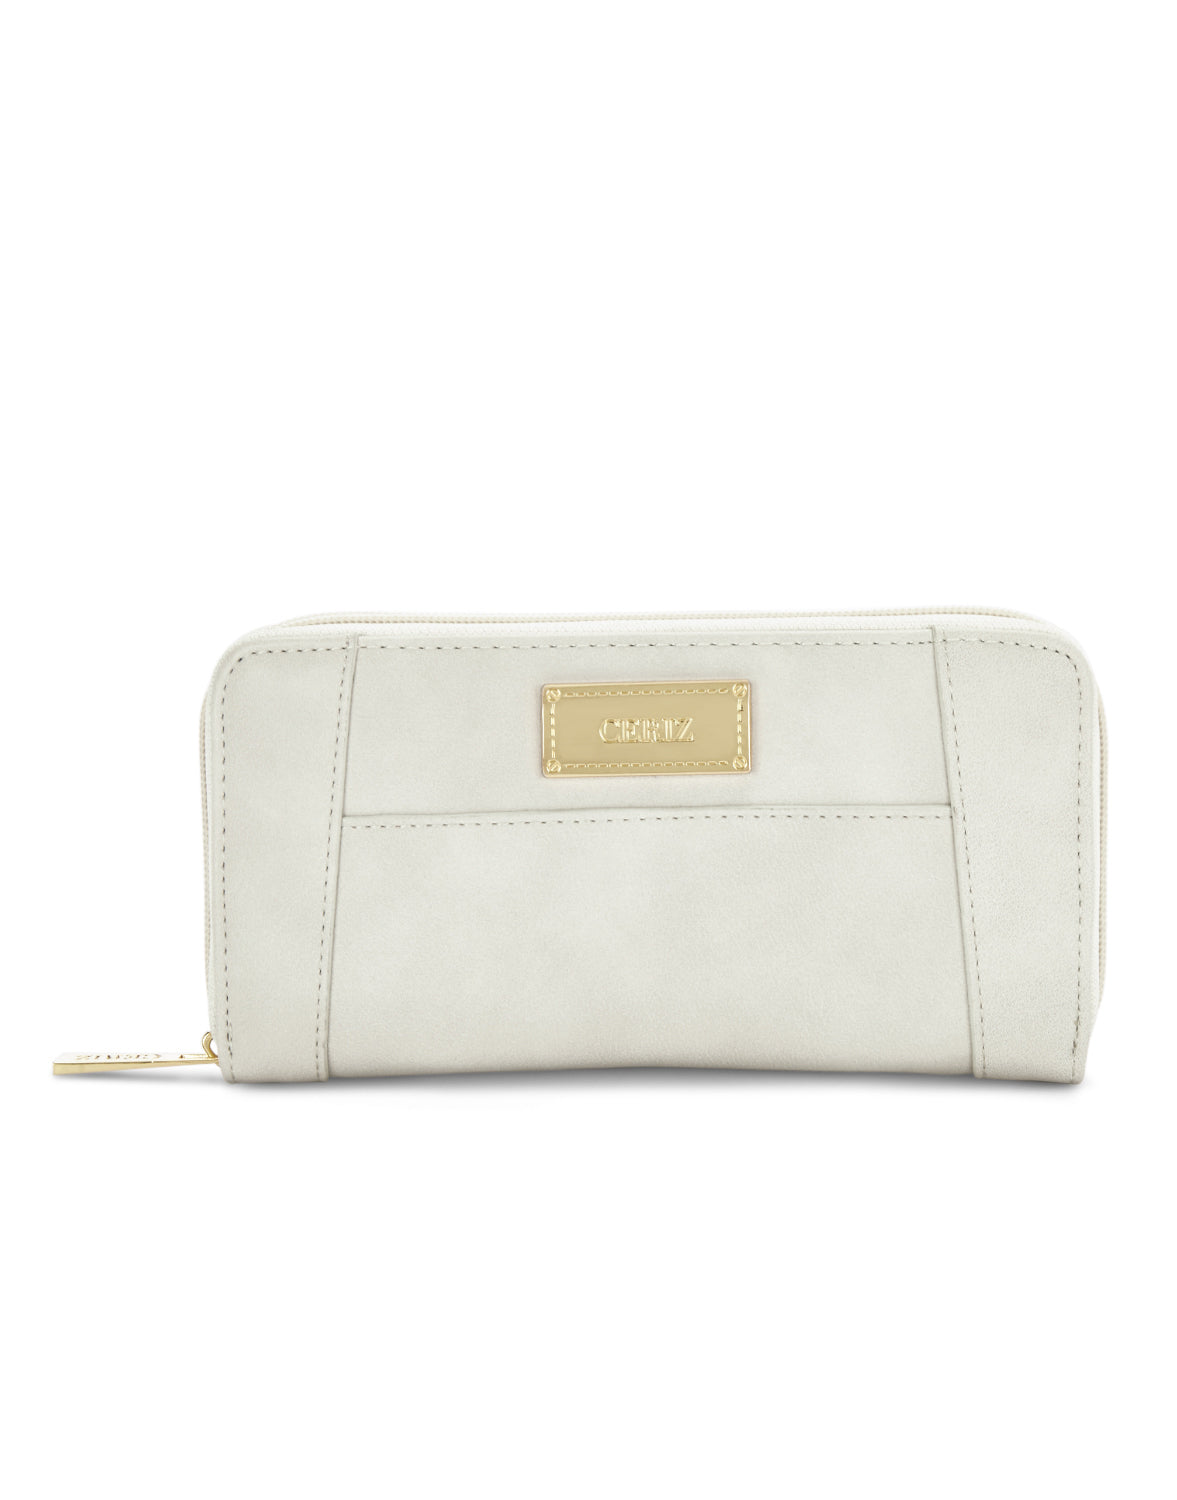 Odeletta Cream Wallet